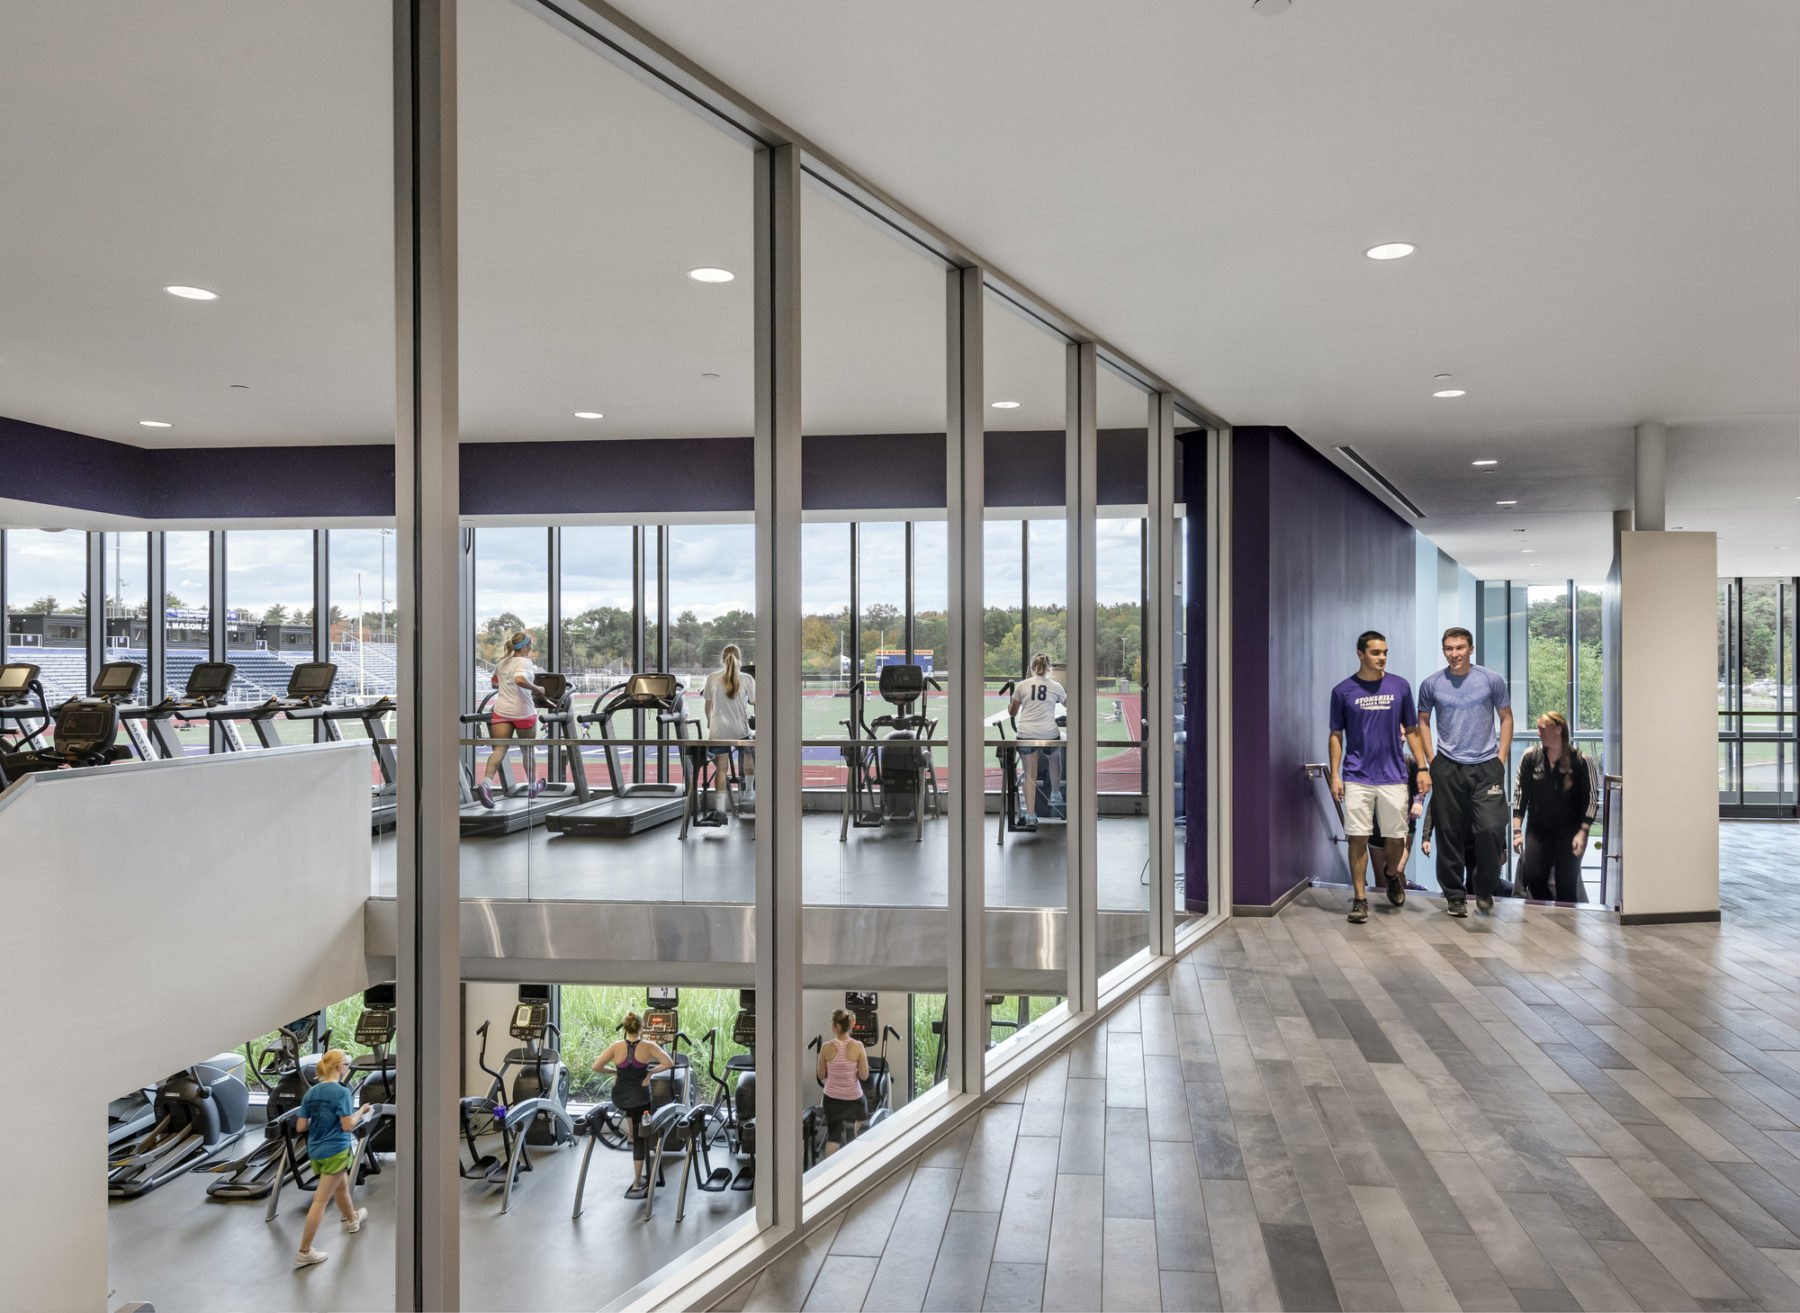 glass walls look onto cardio equipment